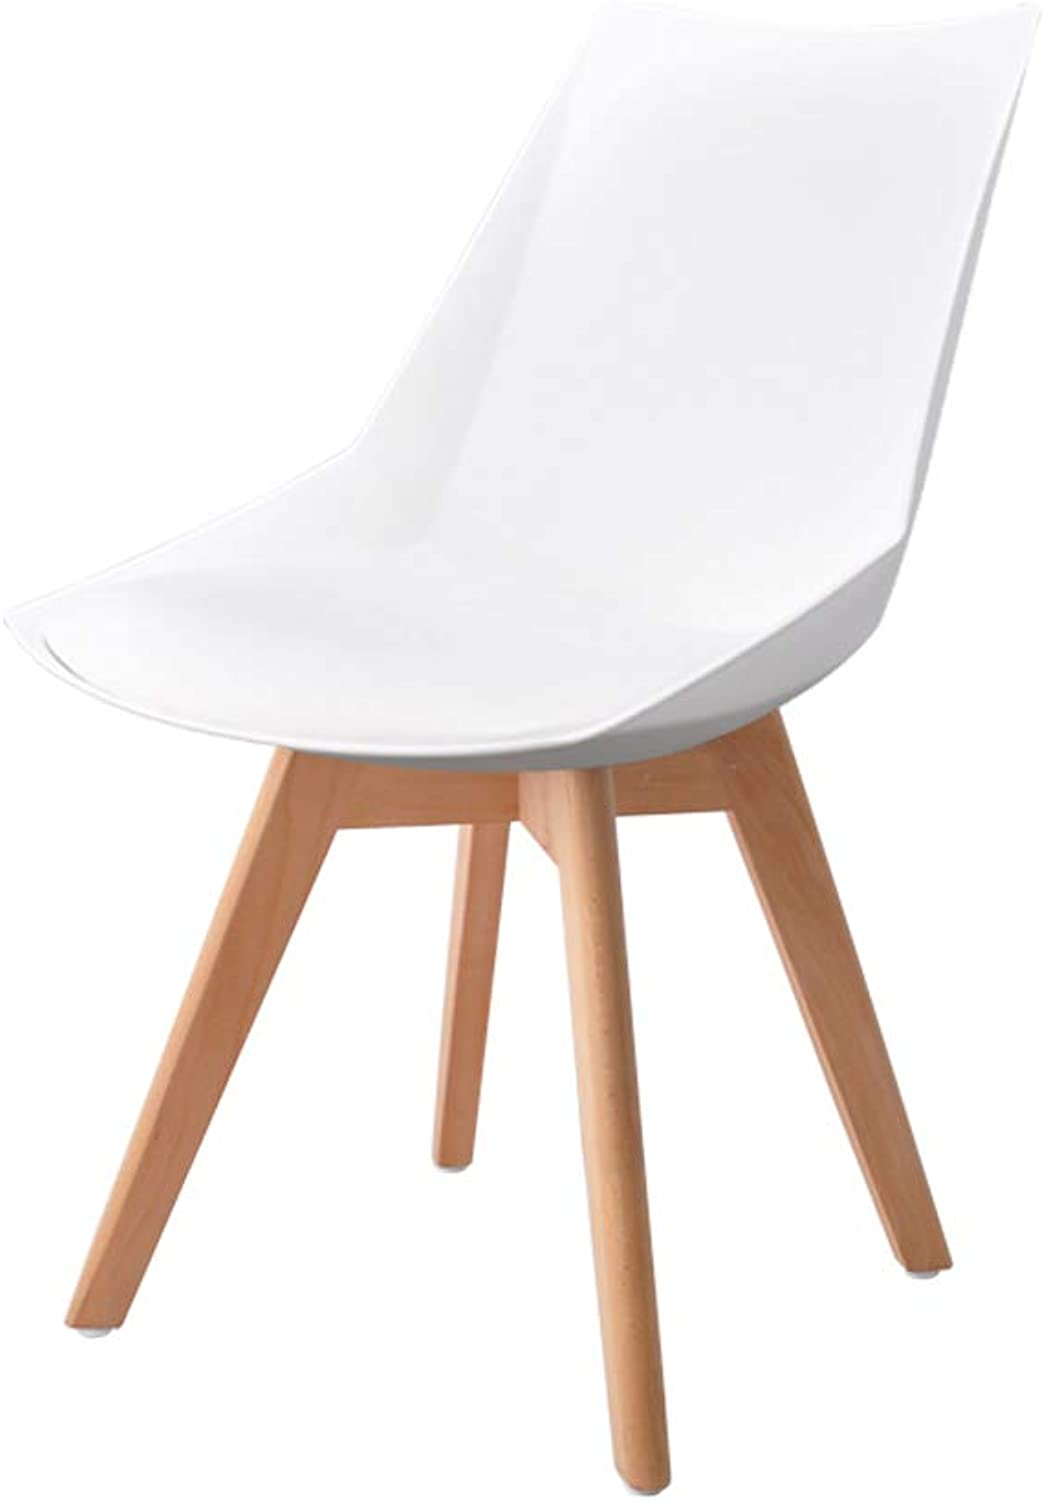 Solid Wood Dining Chair Modern Minimalist Dining Table and Chair Back Home Stool Study Office Leisure Chair Plastic Chair Multicolor (color   White, Size   B)